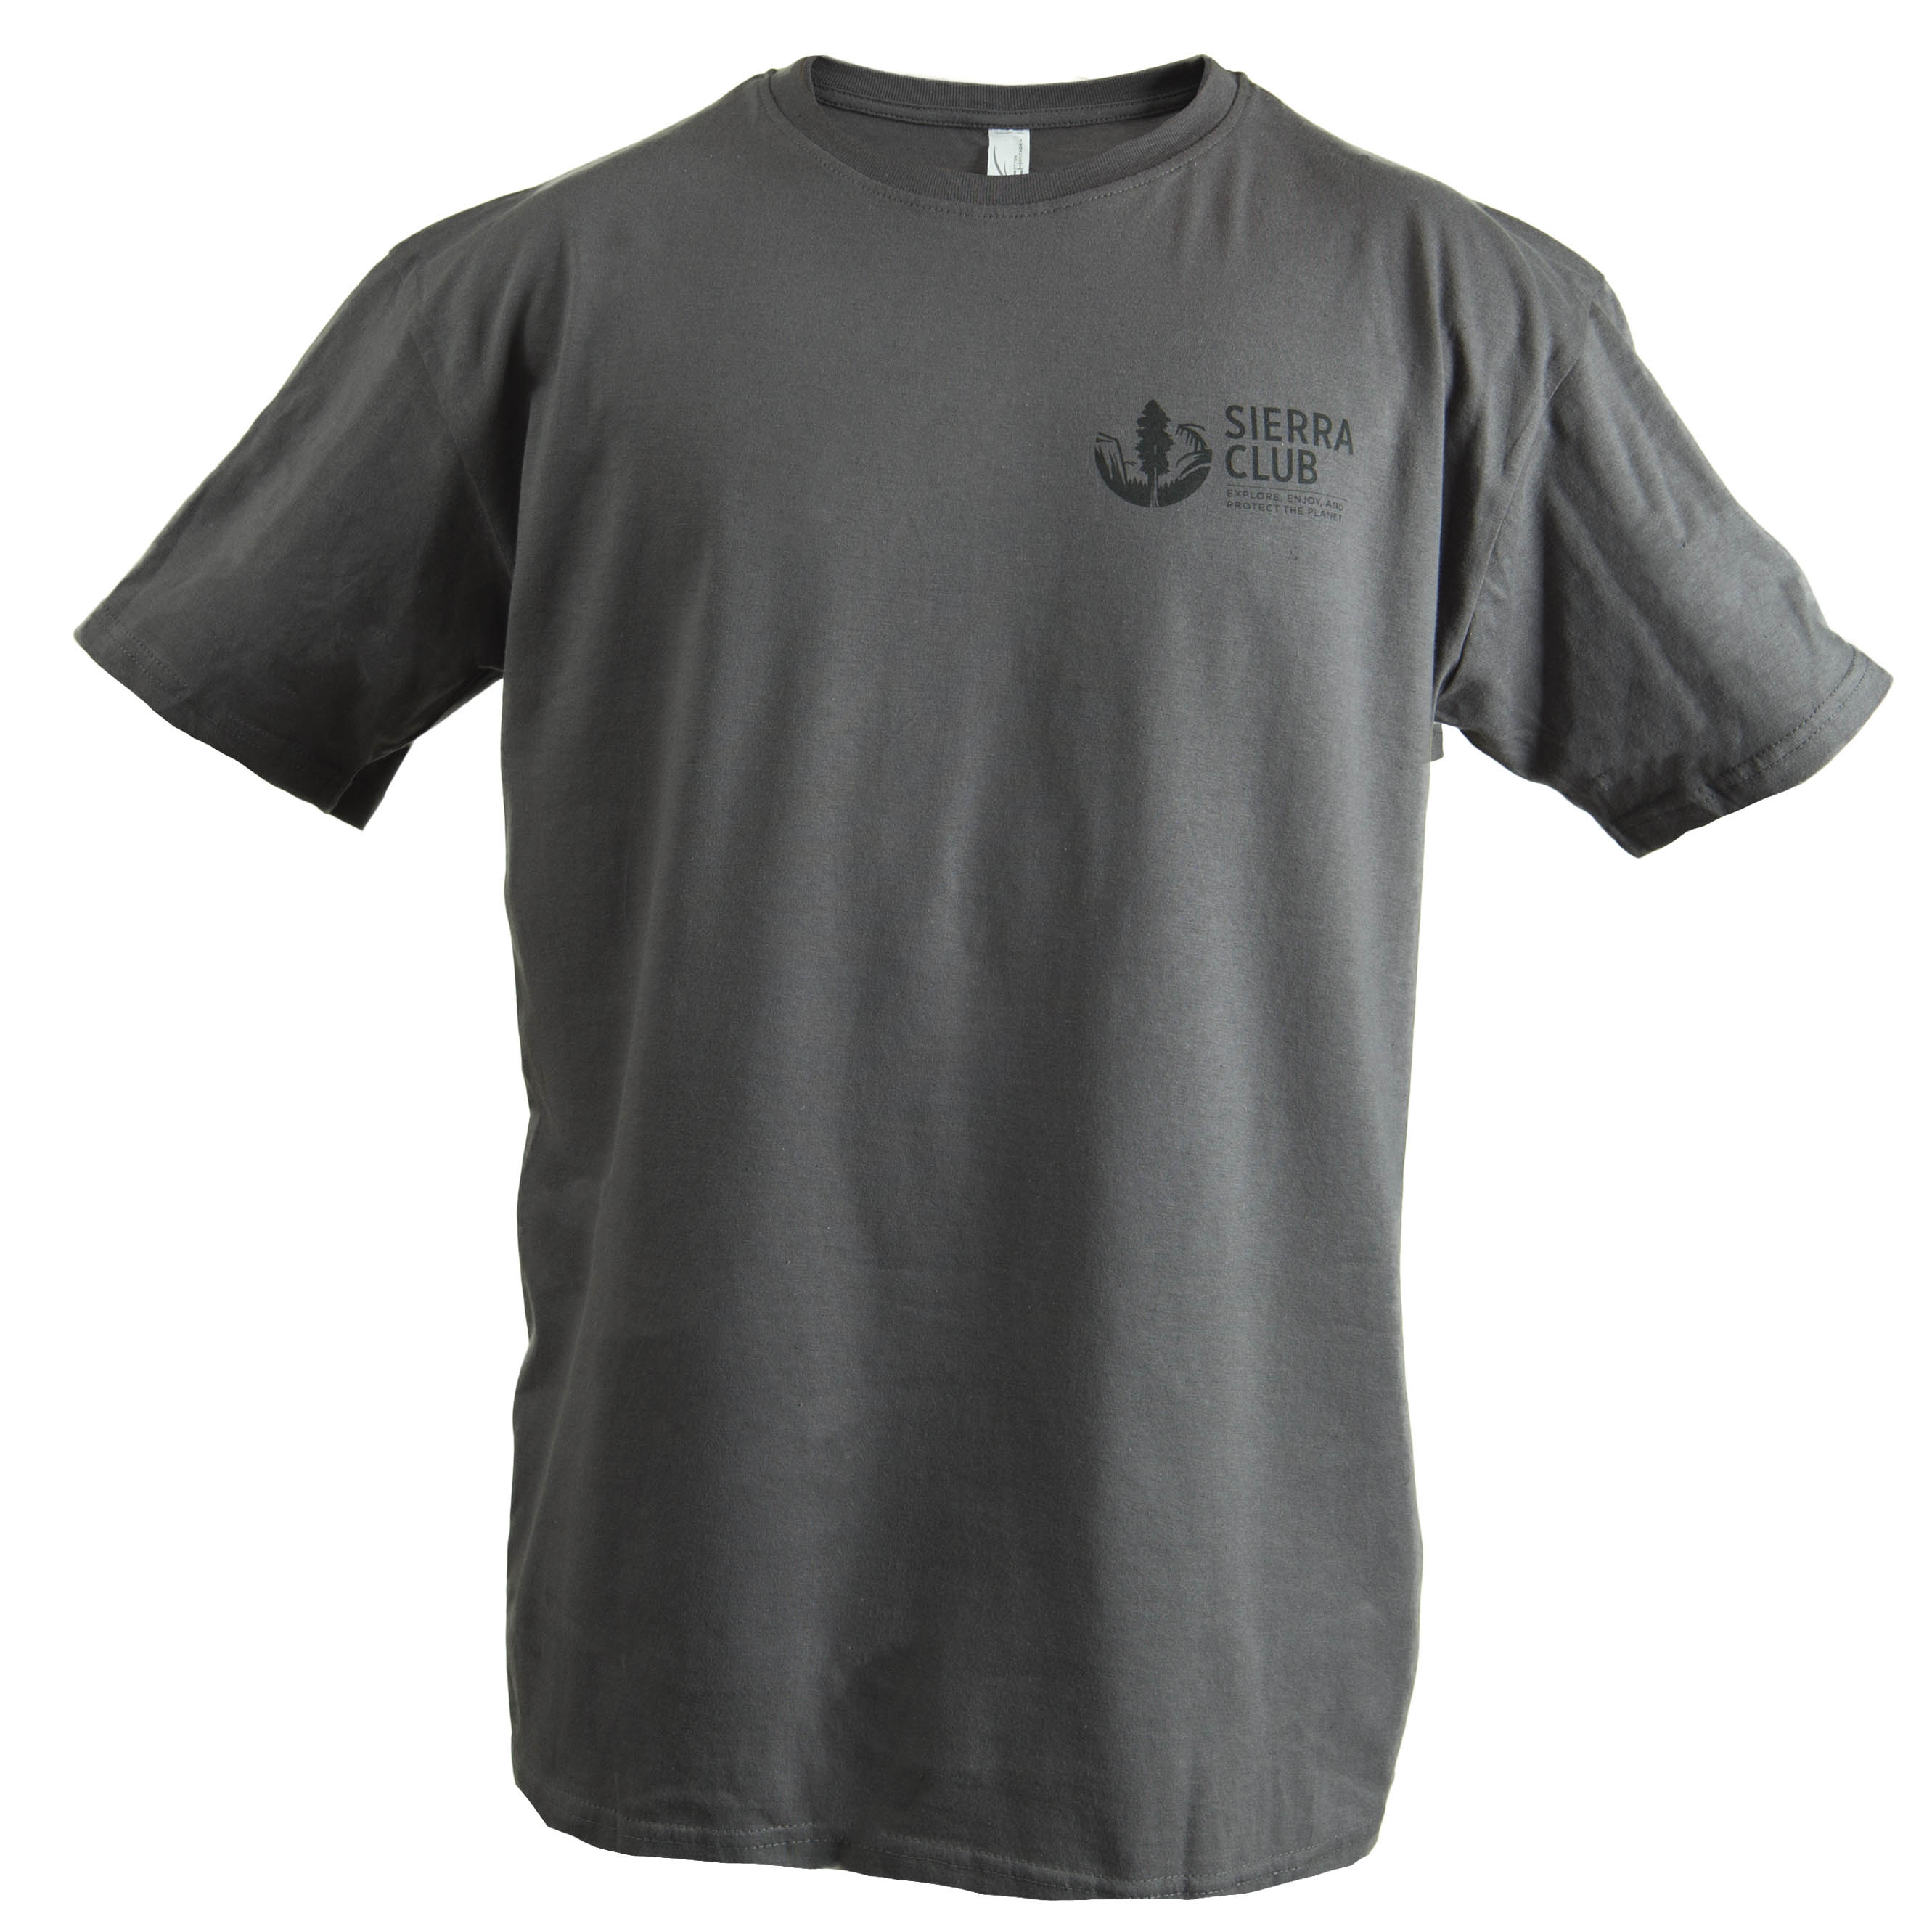 Sierra Club Official Logo T-Shirt